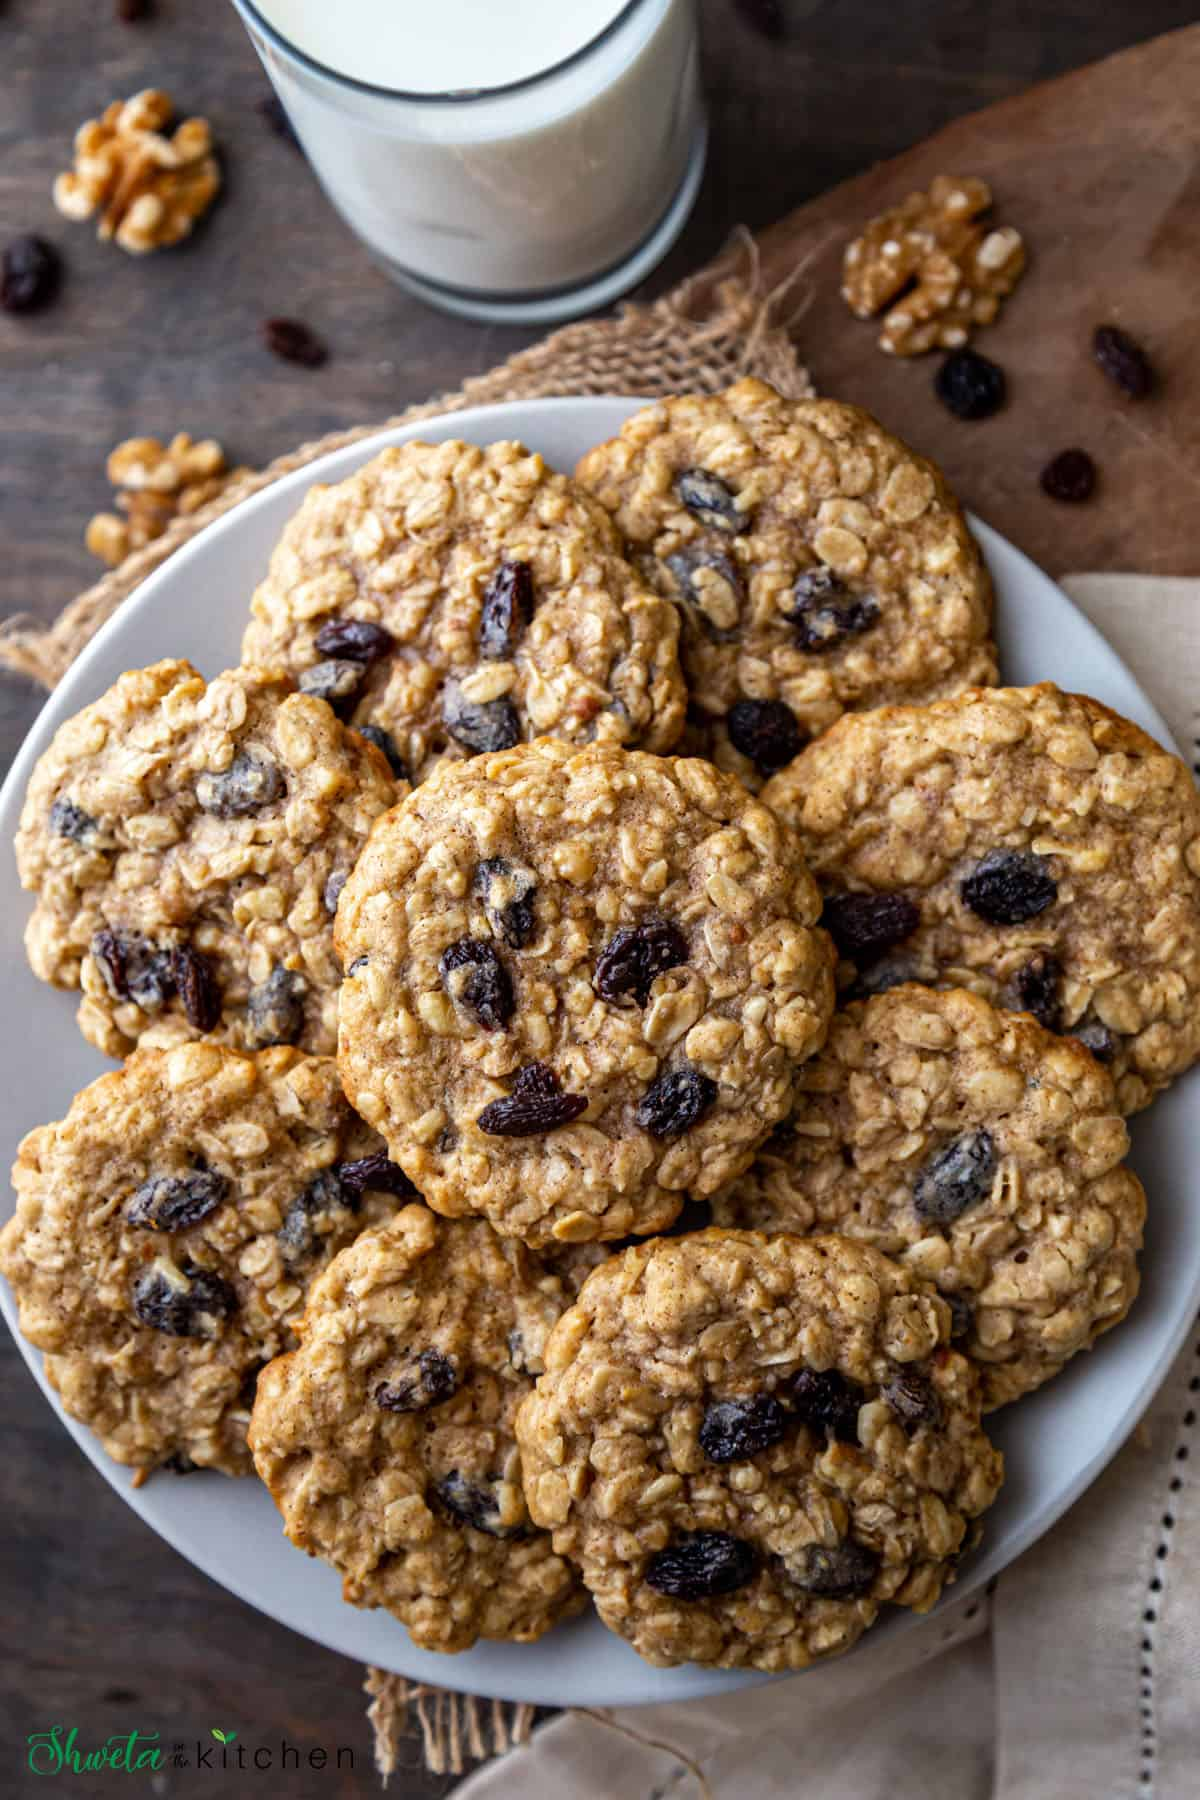 Heap of Oatmeal Raisin Walnut cookies on plate with glass of milk on the side